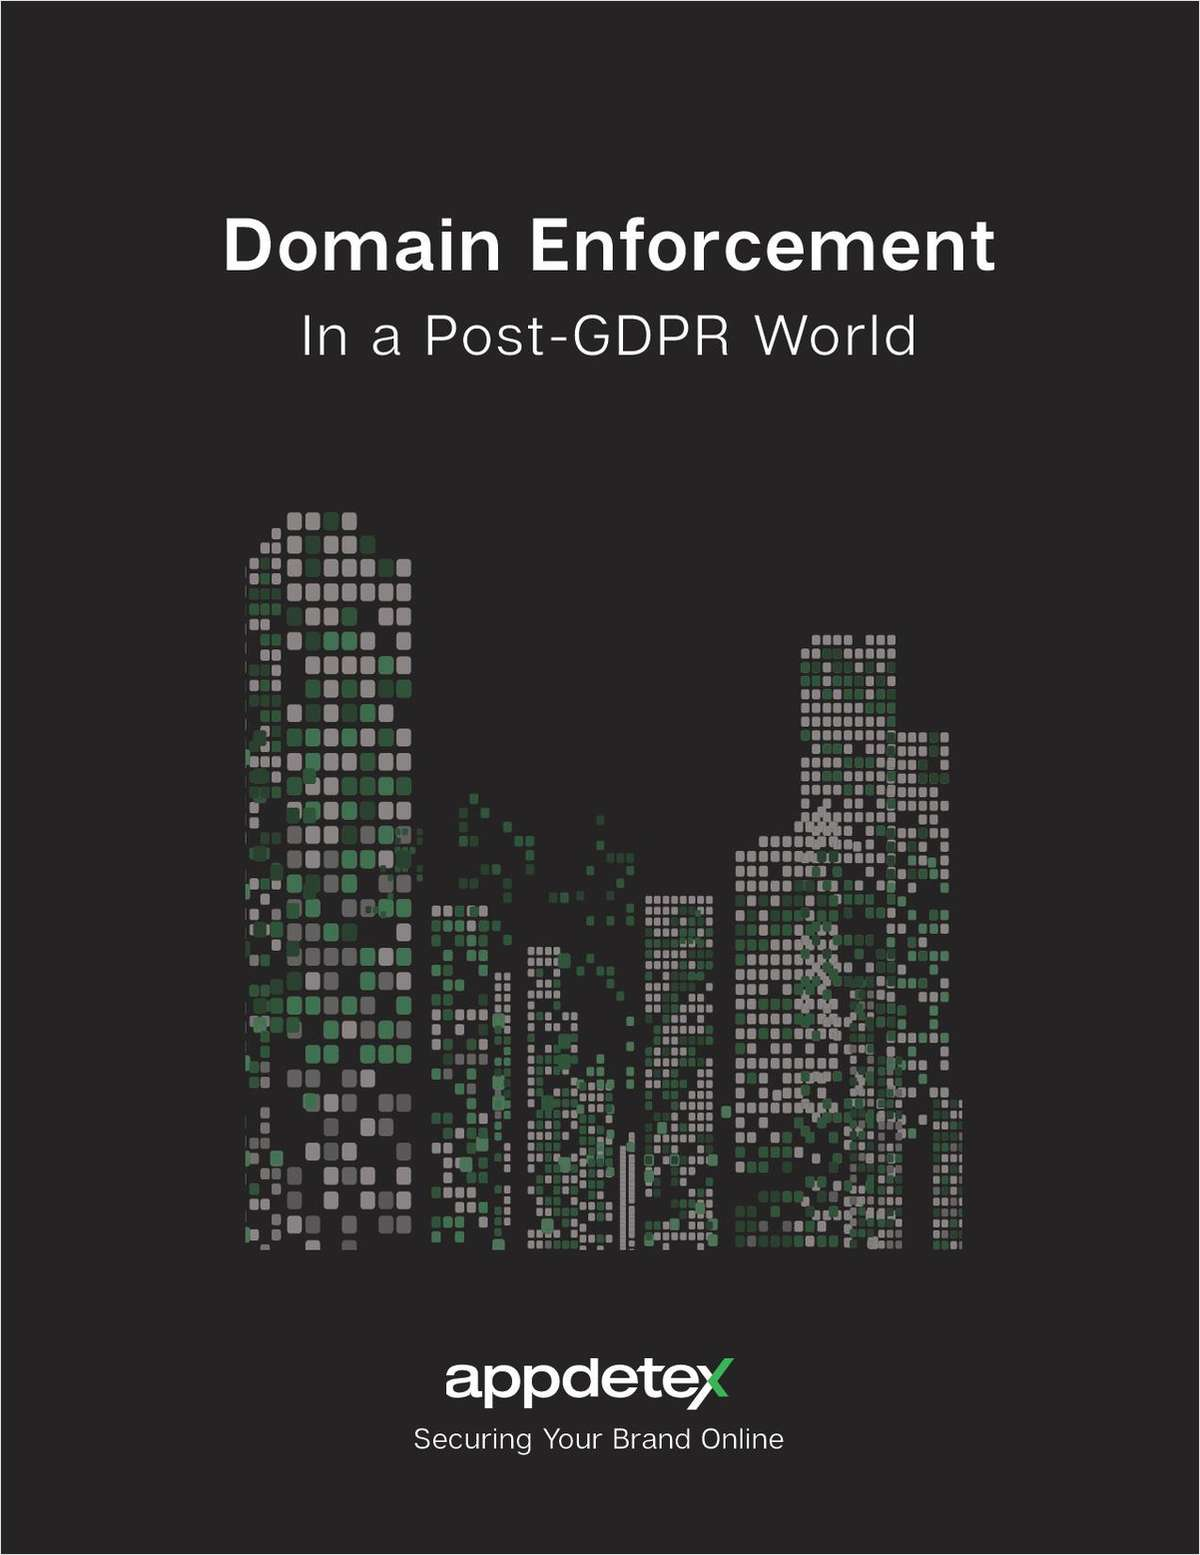 Domain Enforcement in a Post-GDPR World